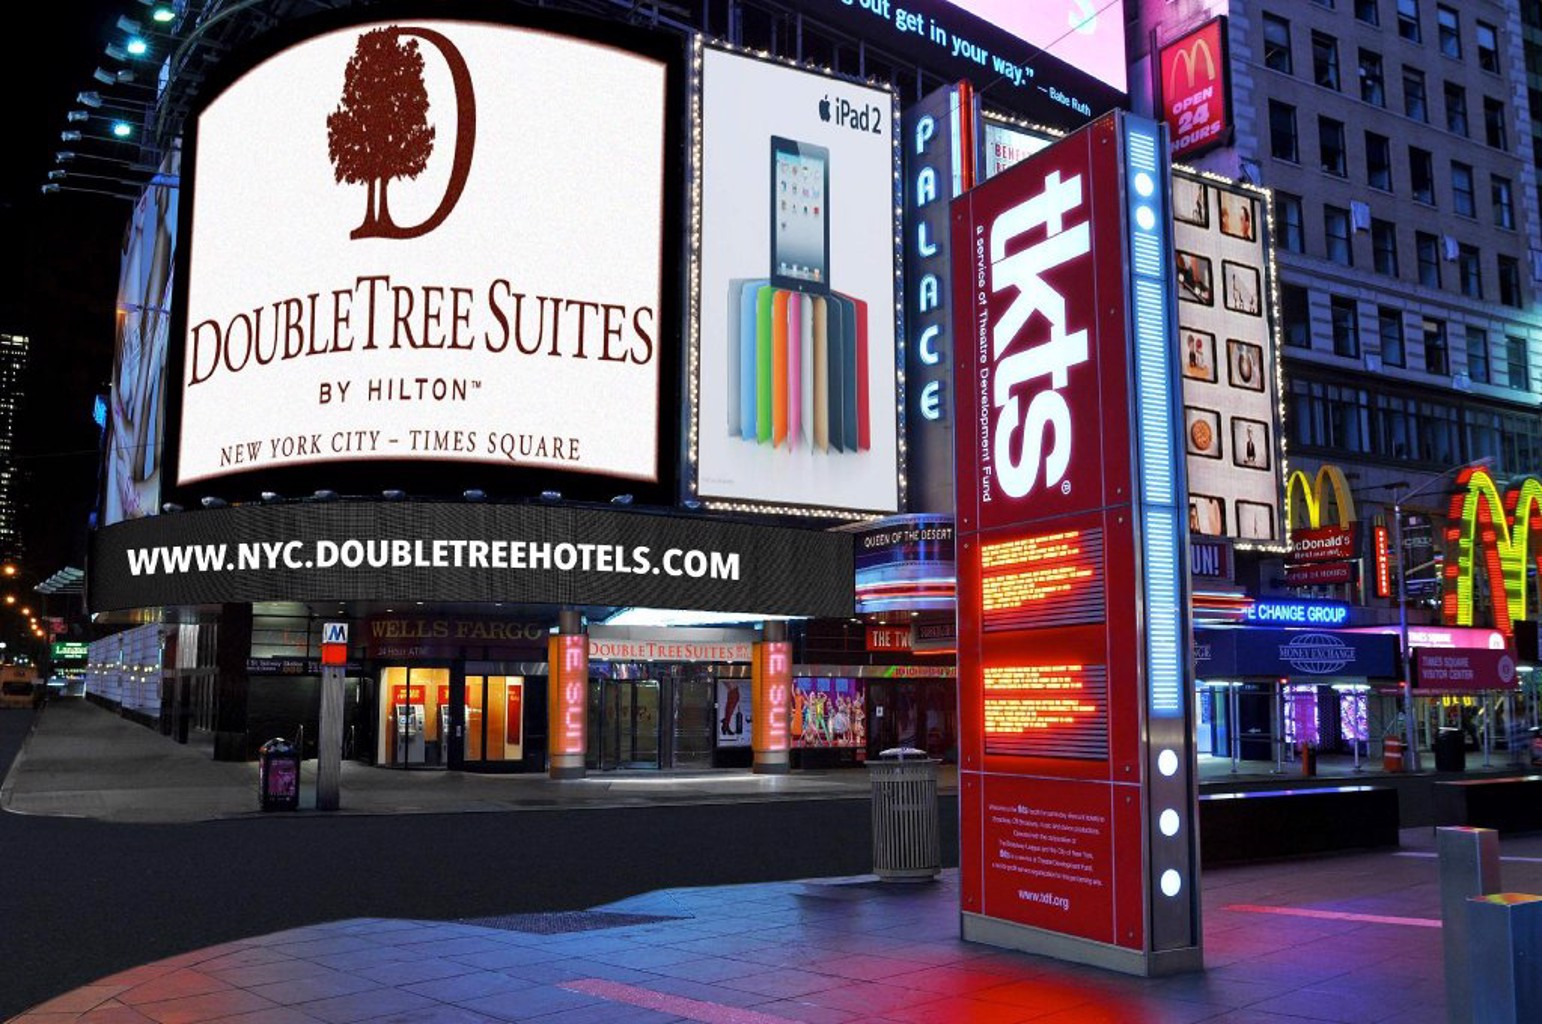 DoubleTree Suites by Hilton Hotel New York City